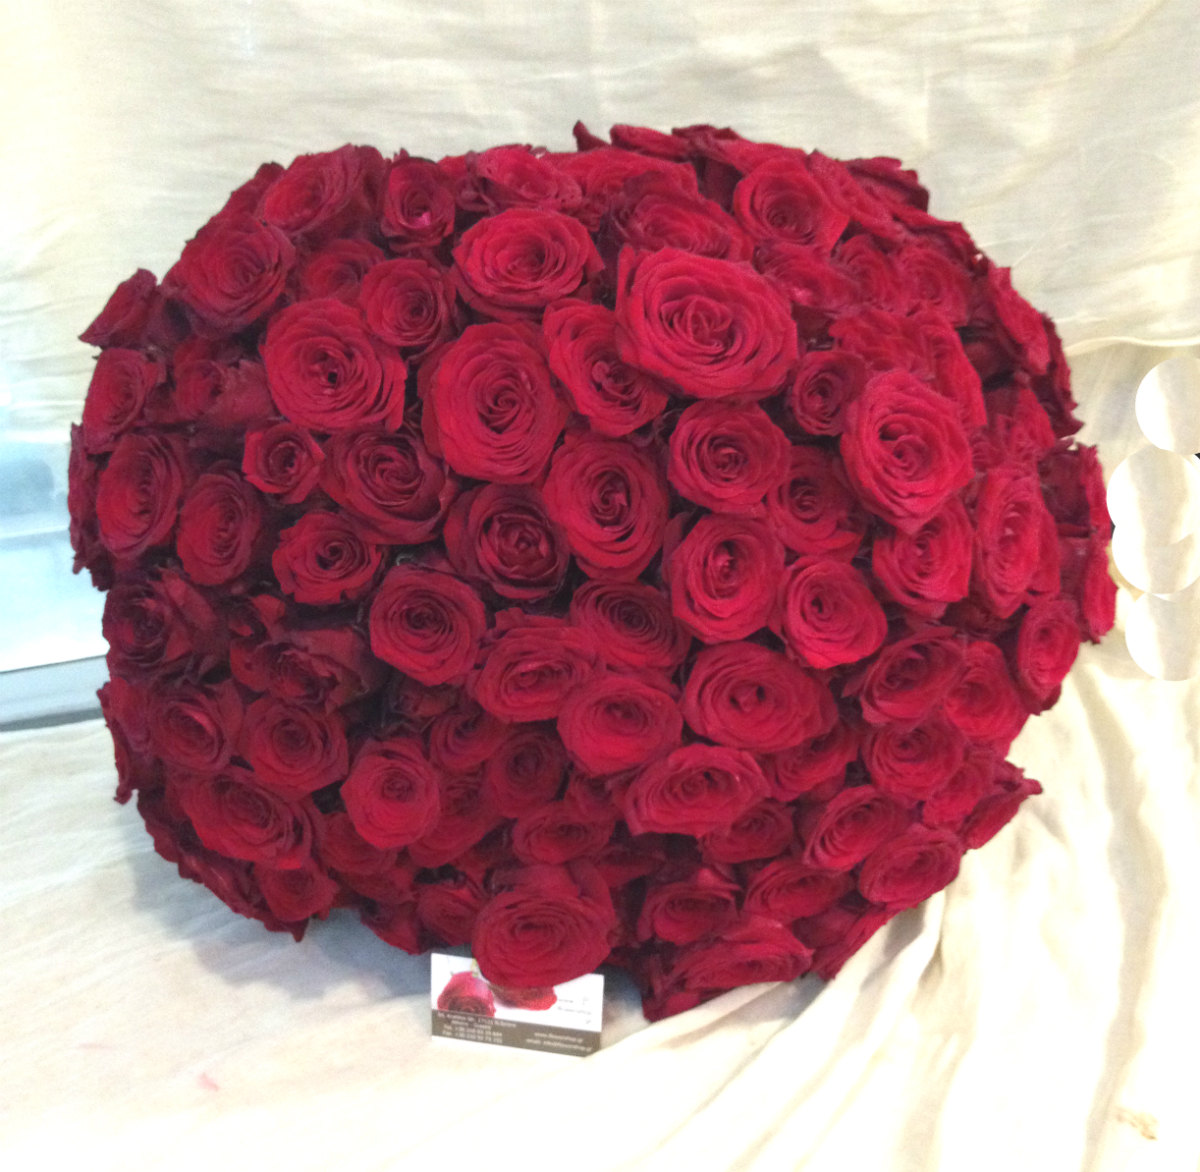 XLarge Red Roses Bouquet  200 Heads  Exclusive